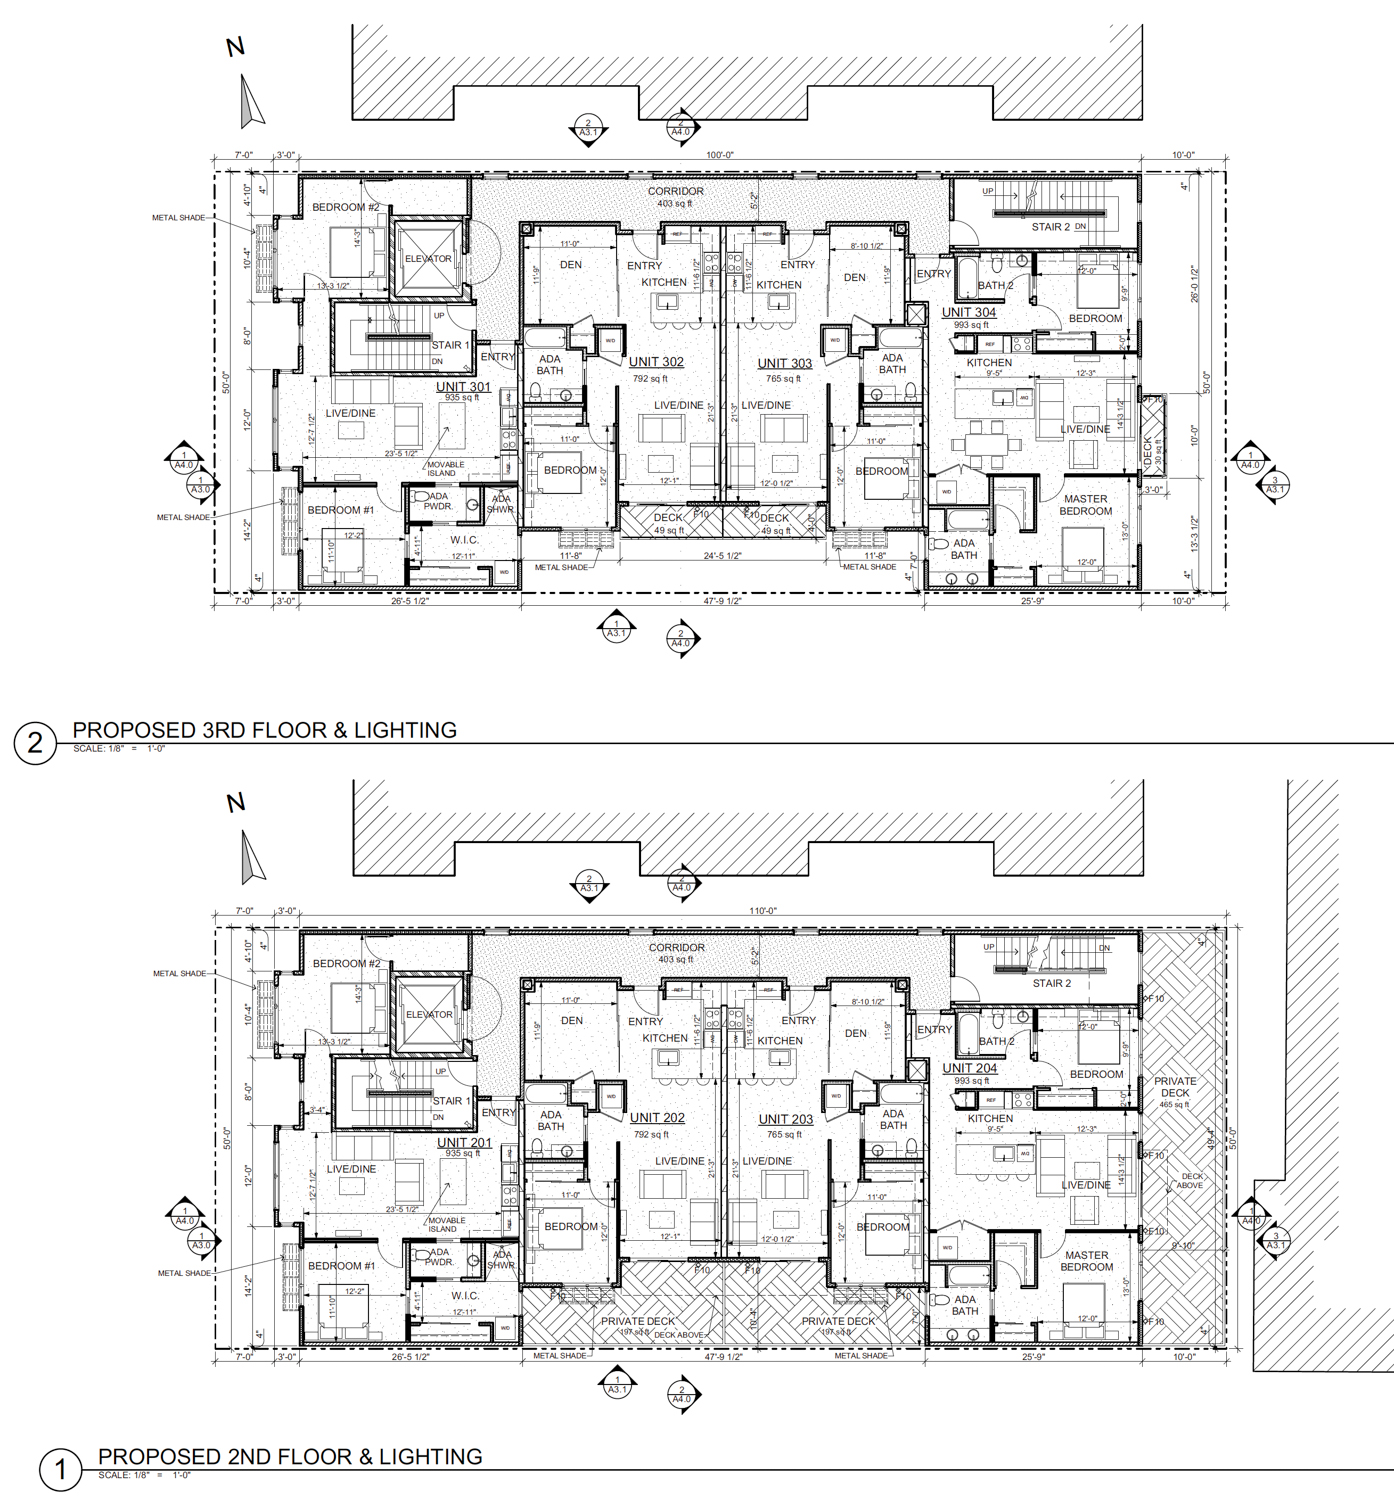 3414 Andover Street floor plan, design by Kotas Pantaleoni Architects